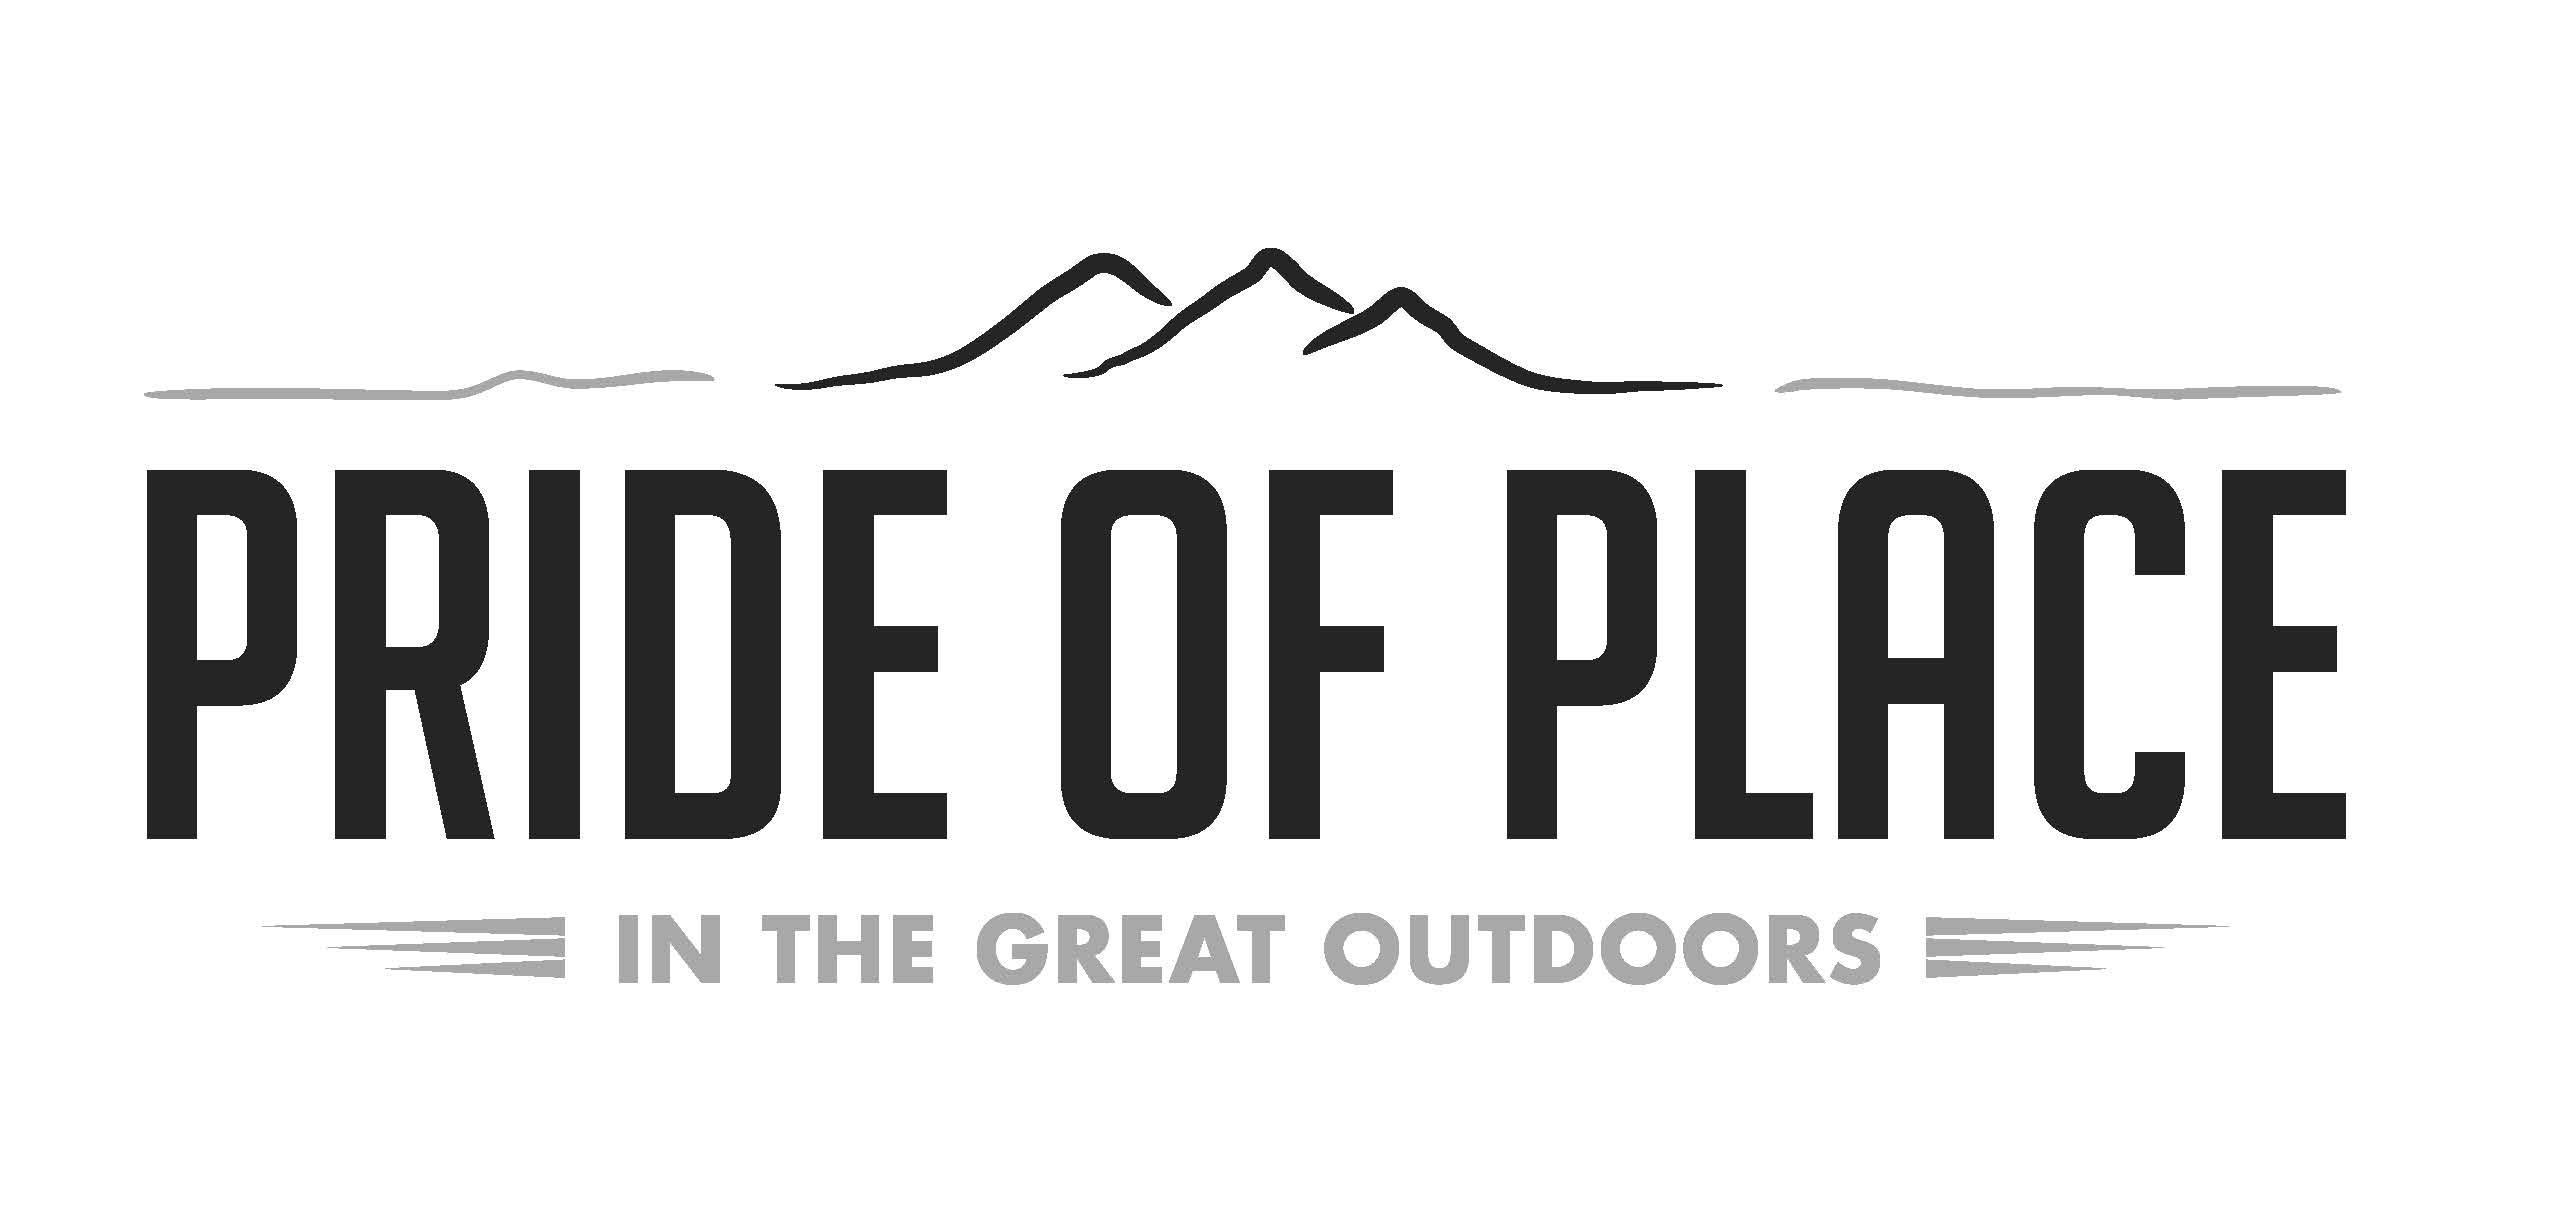 4th Annual Pride of Place in the Great Outdoors Fundraising Gala